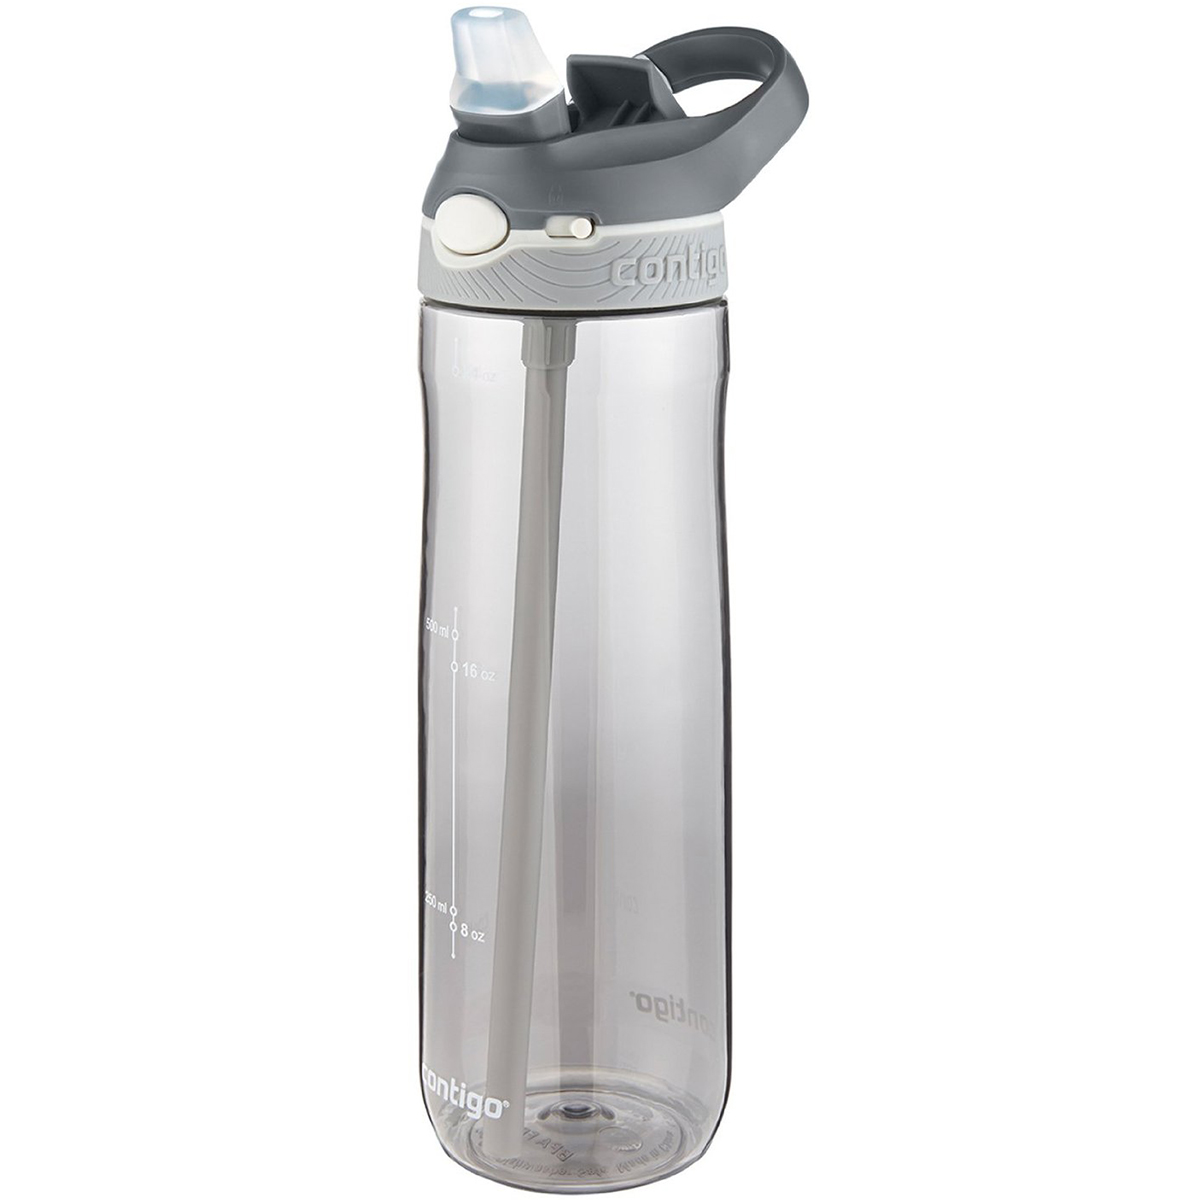 Contigo-24-oz-Ashland-Autospout-Water-Bottle Indexbild 17